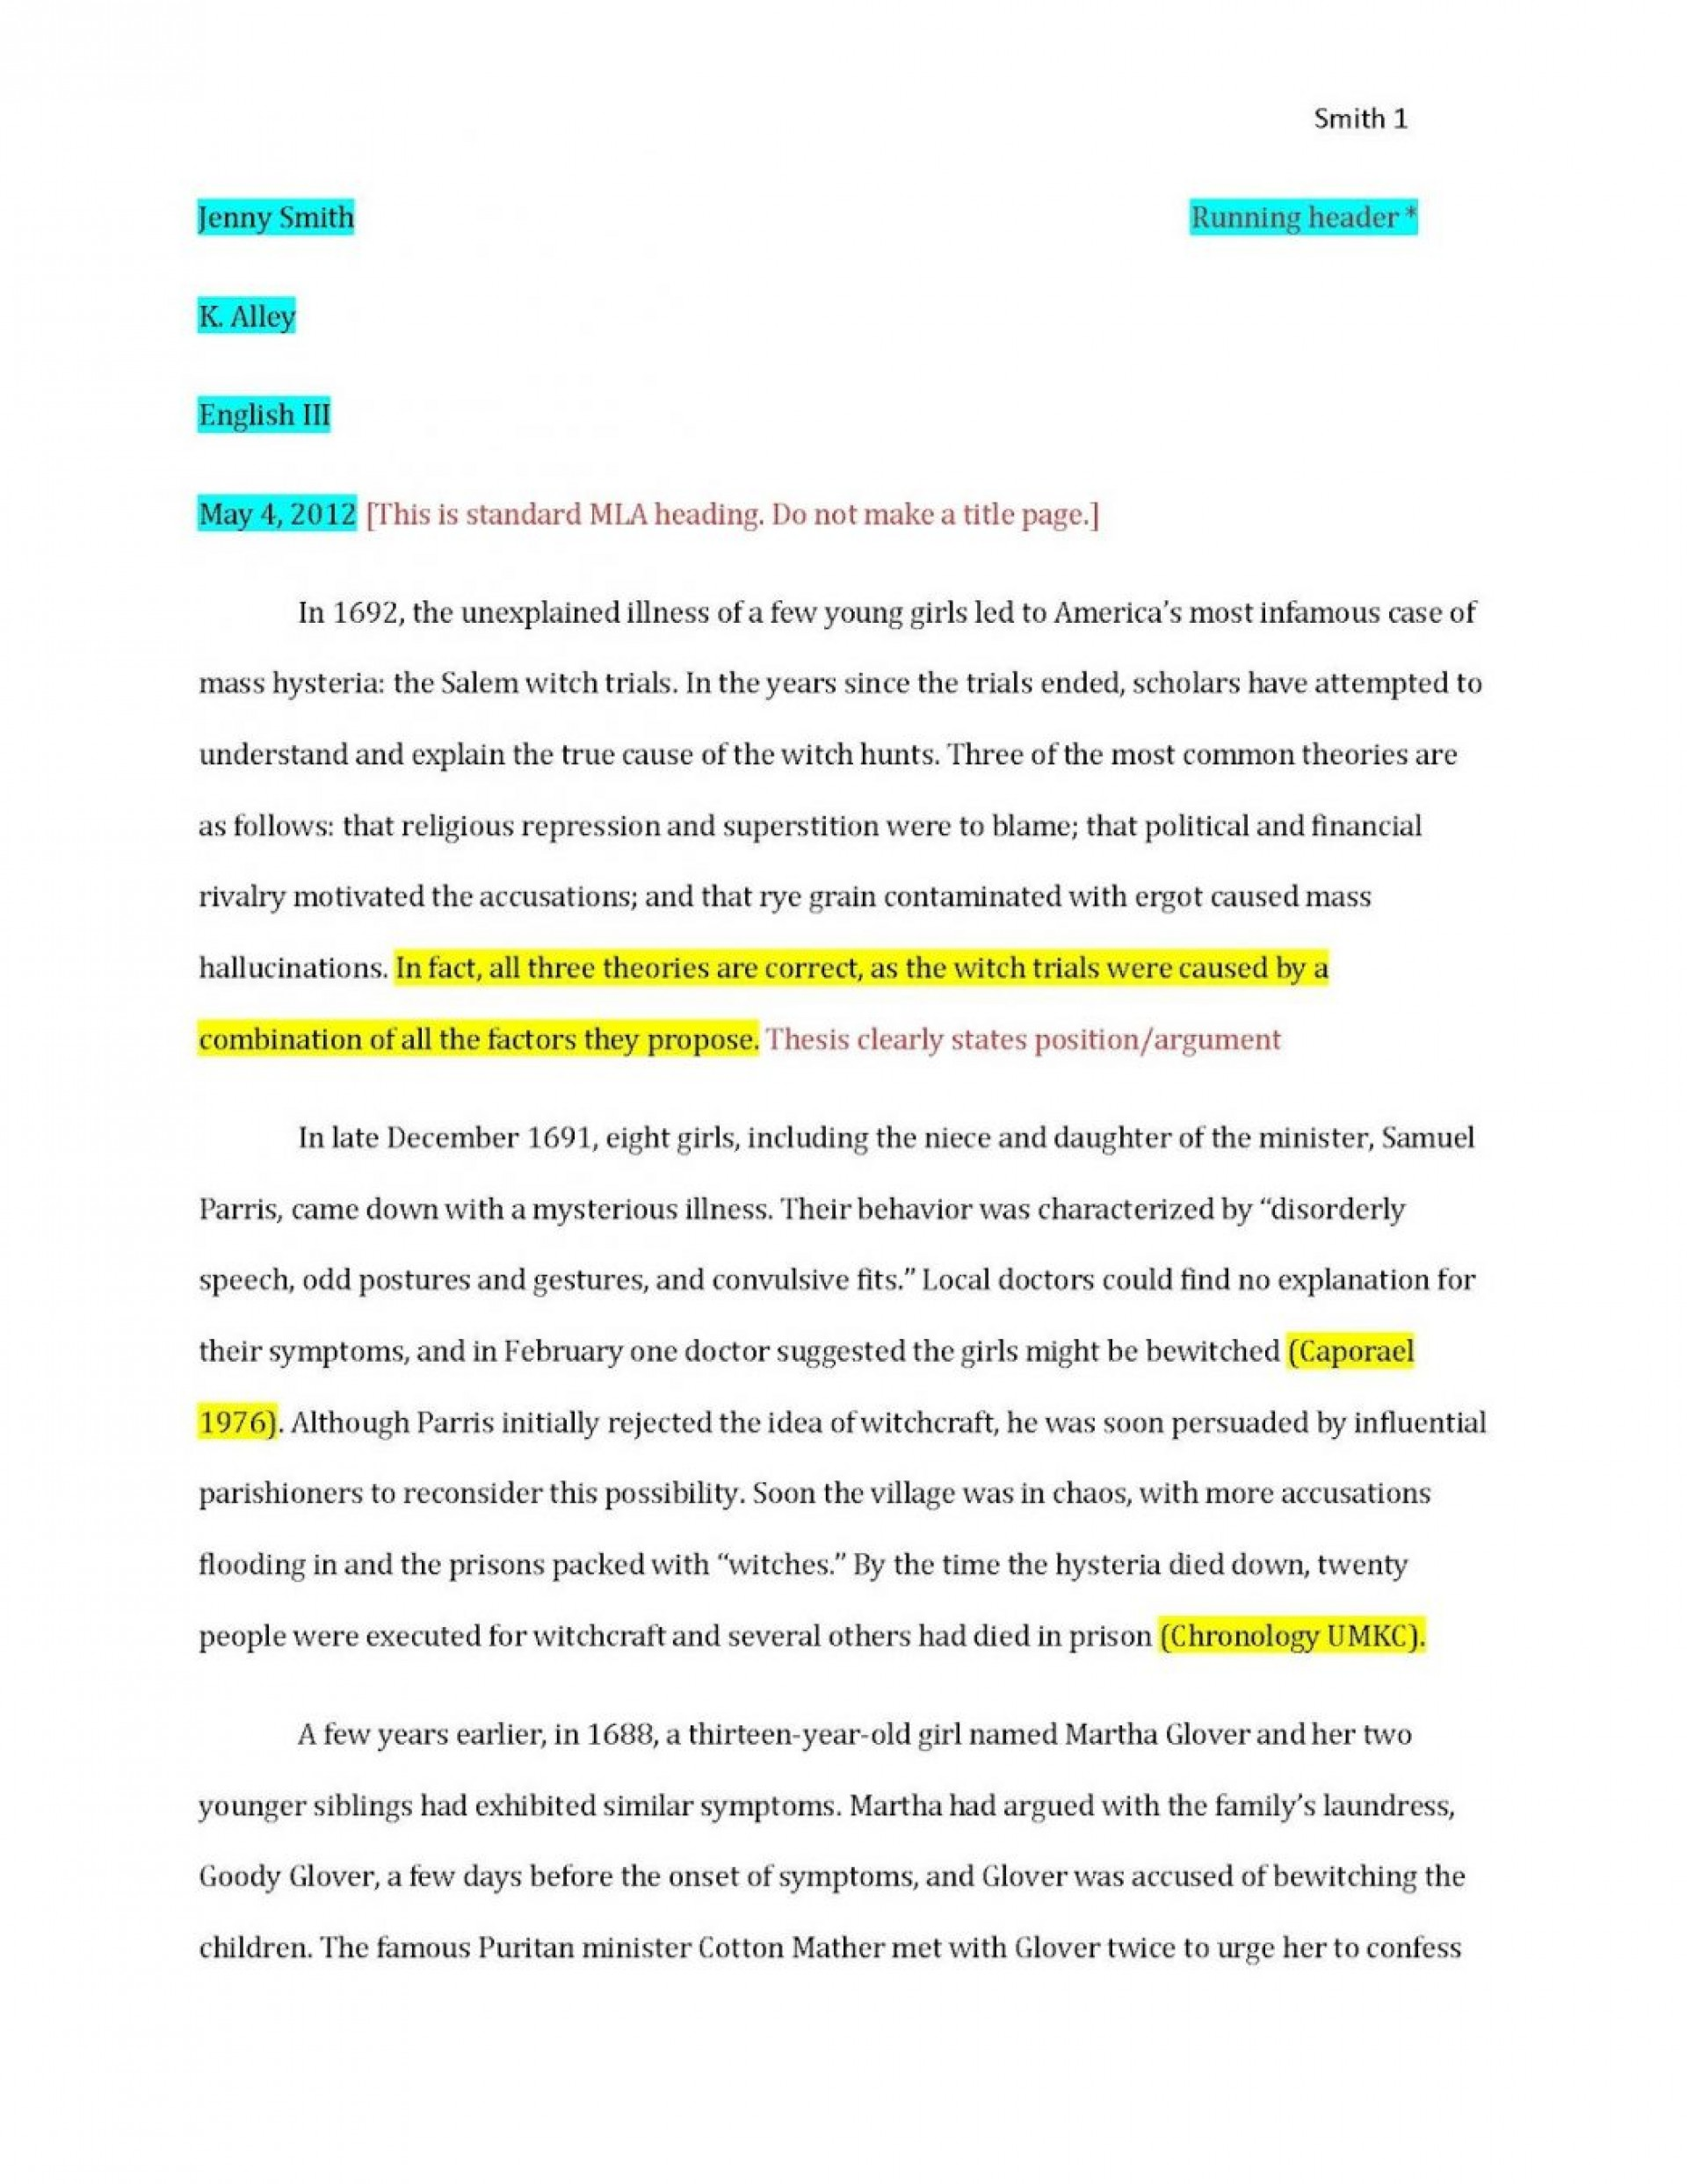 002 Mla Format Essay Generator Author Date References System Ready Set Automaticpaper P 1048x1357 Wondrous Bot Online Free Reviews 1920